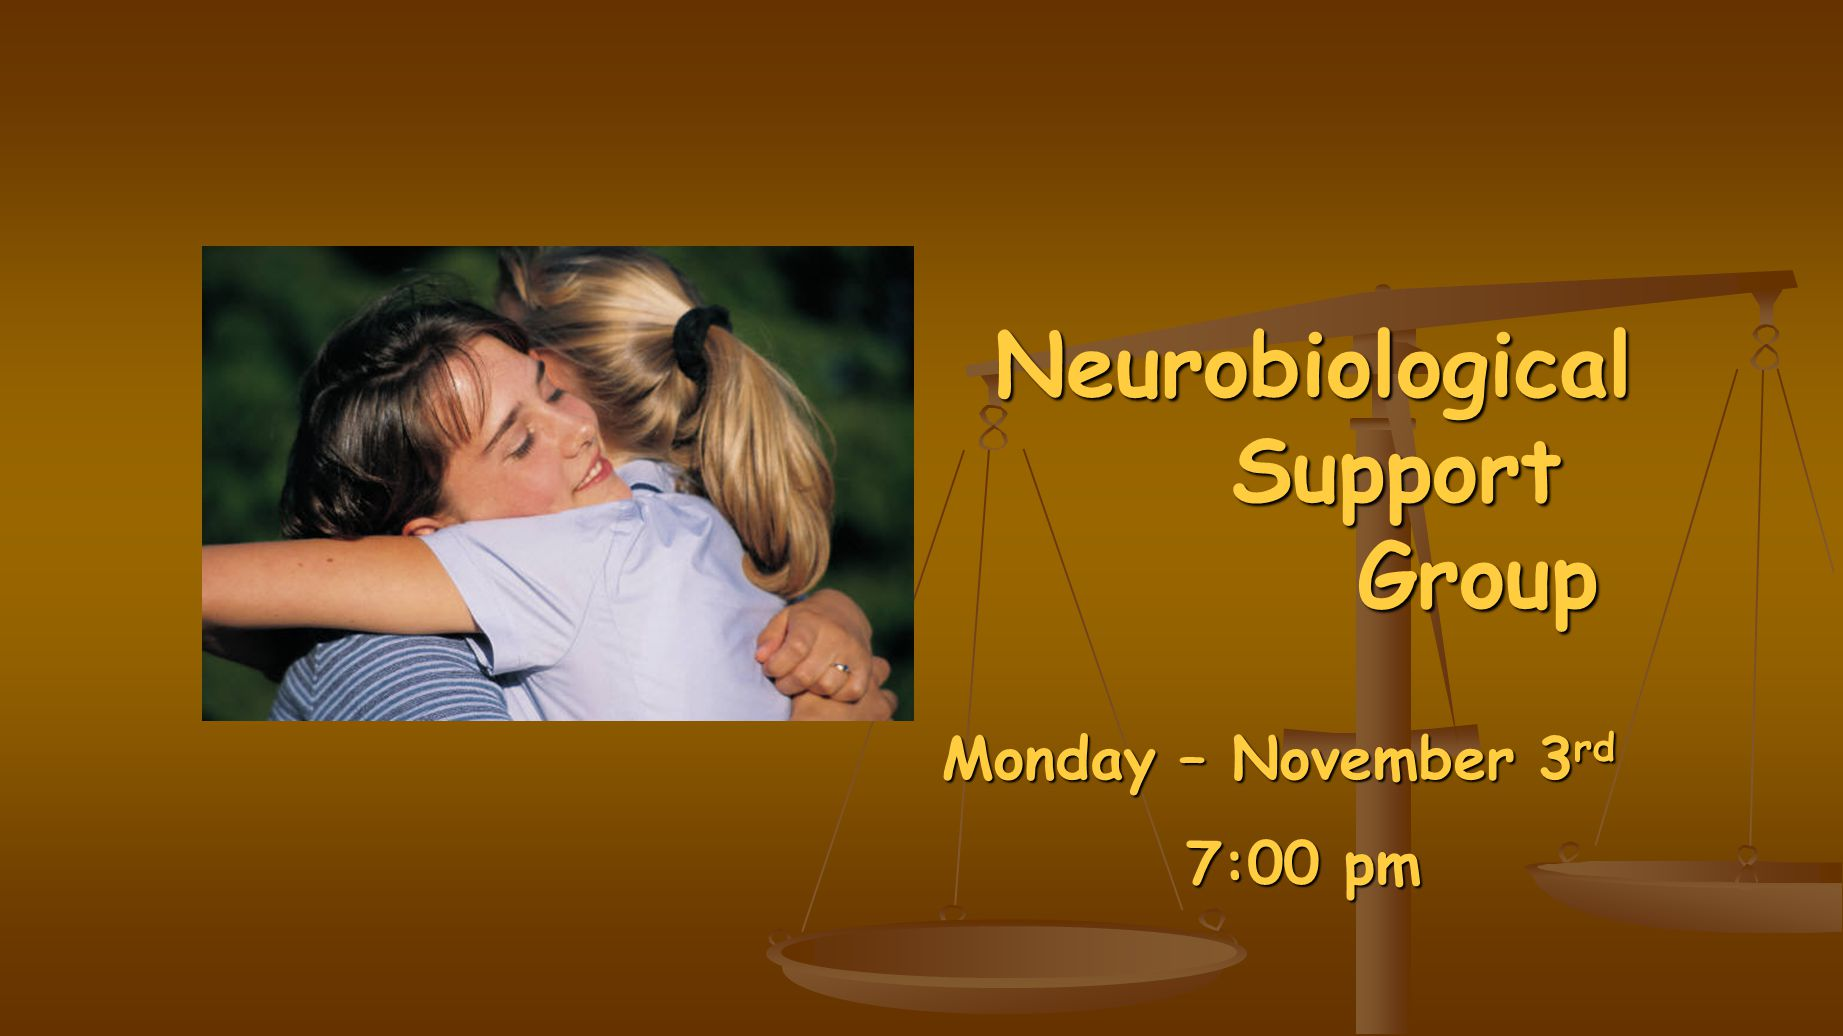 Neurobiological Support Group Monday – November 3 rd 7:00 pm